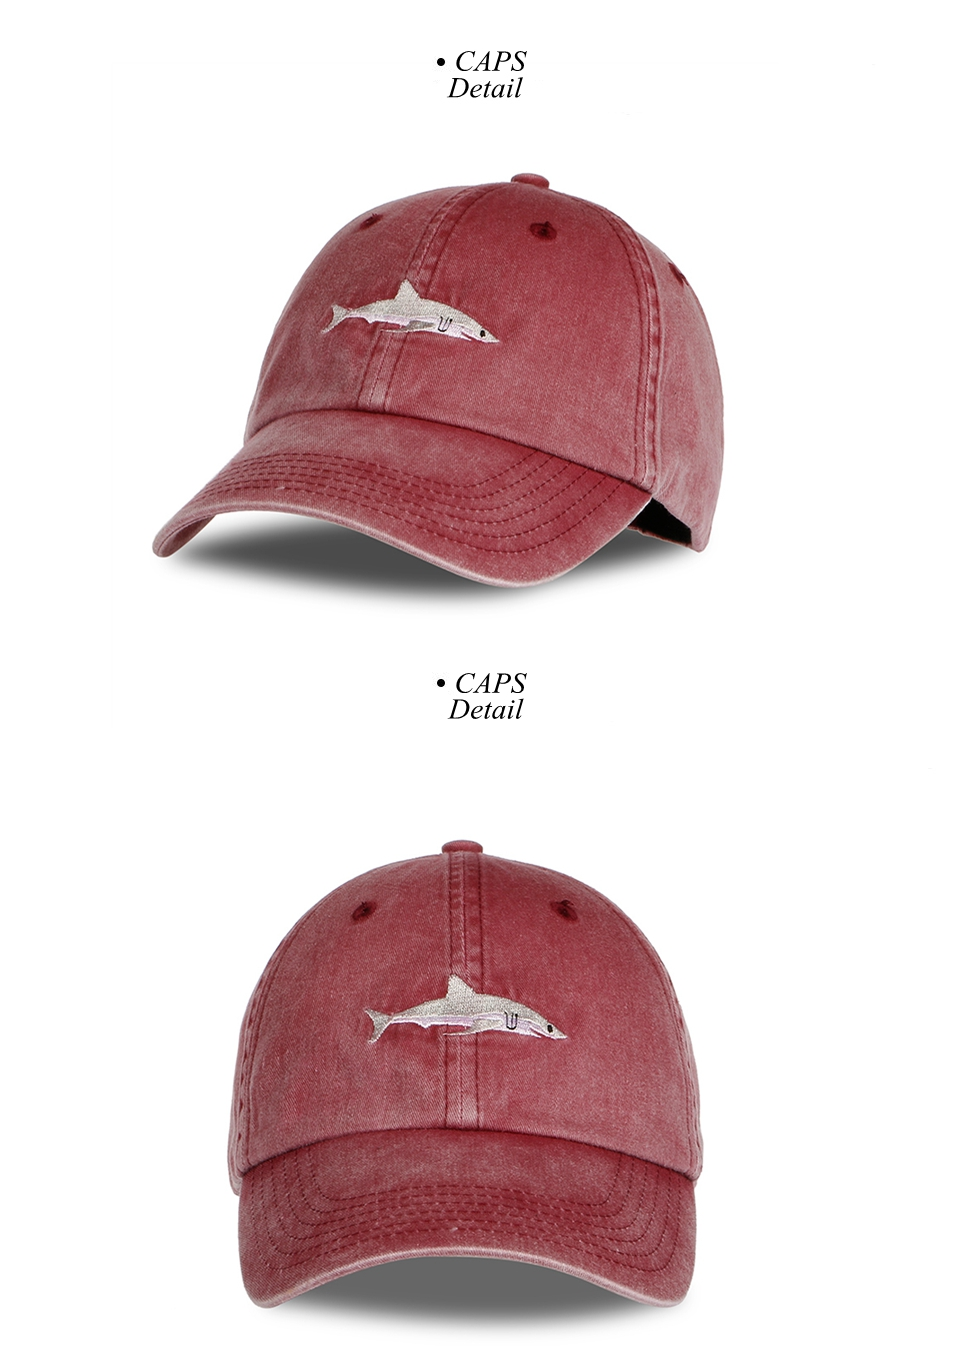 "Shark Cap"" Shark Snapback Cap for Men/Women 5"